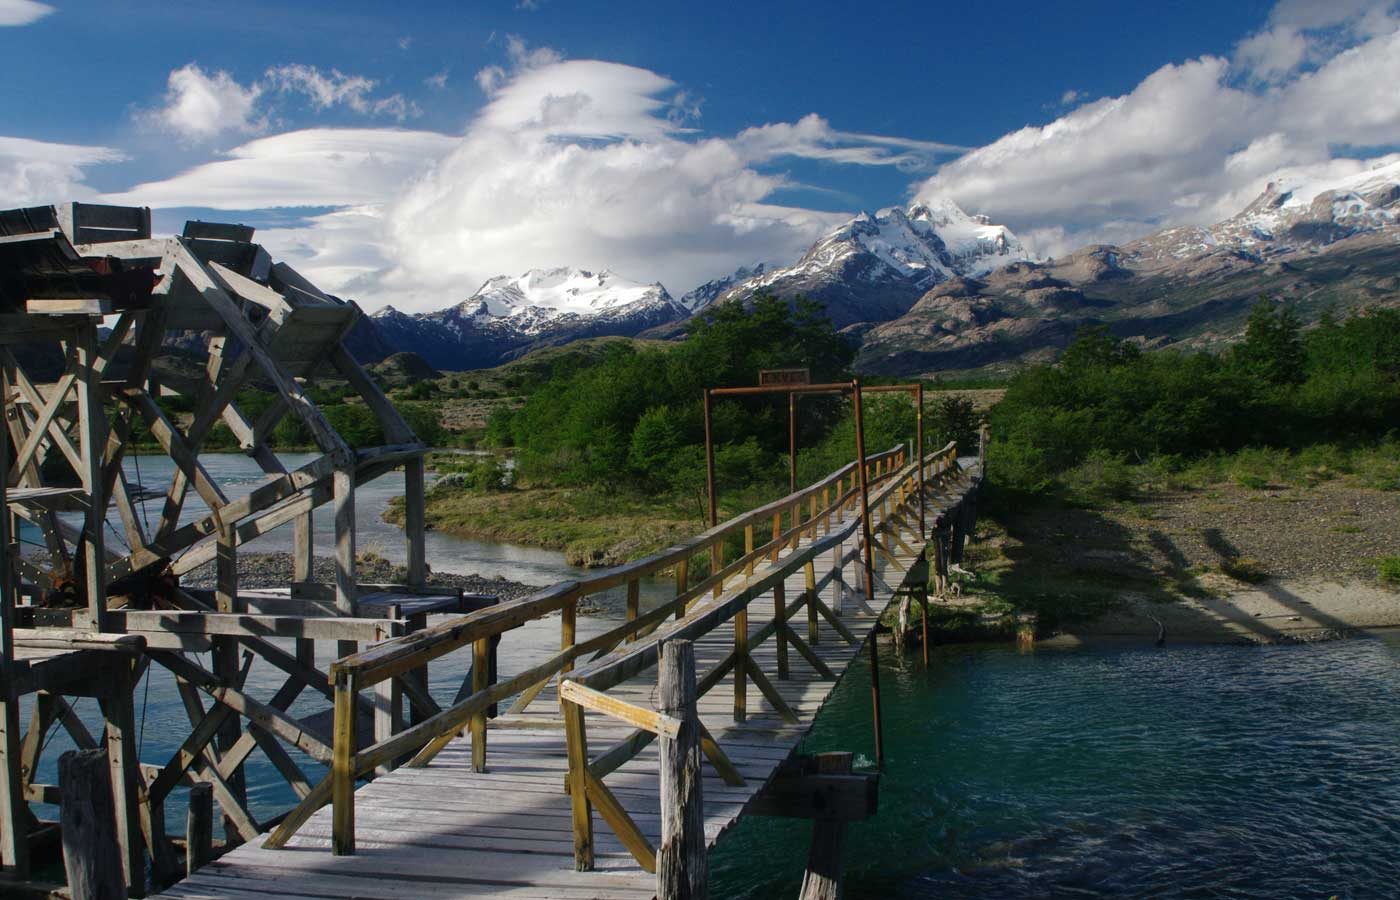 Wooden-bridge-over-lake at Estancia Cristina, Patagonia, Argentina